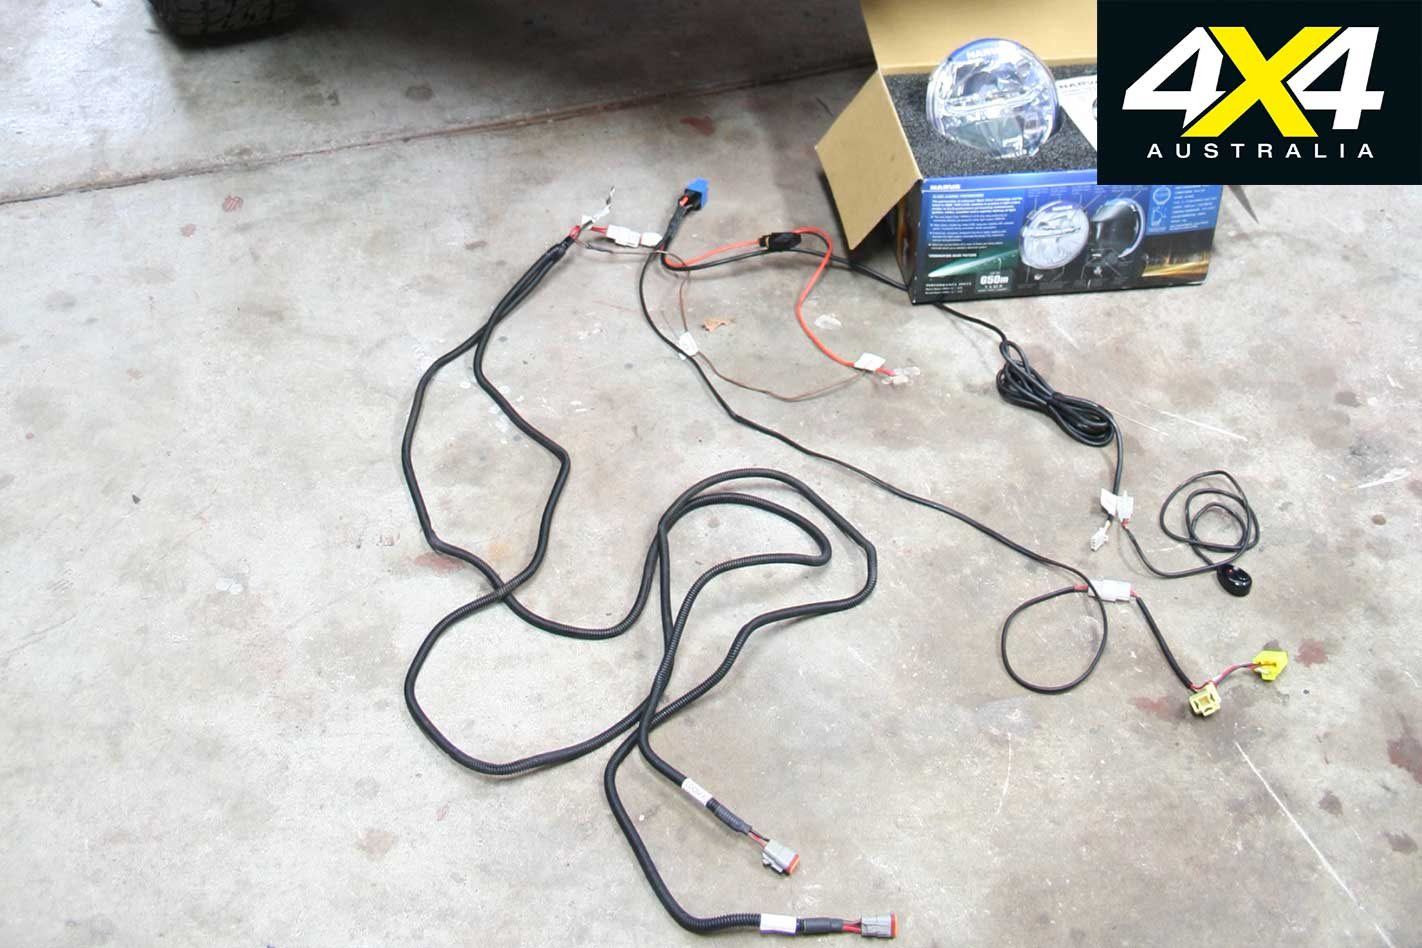 How to install 4x4 driving lights: DIY Guide | 4x4 Australia Narva Wiring Loom Instructions on